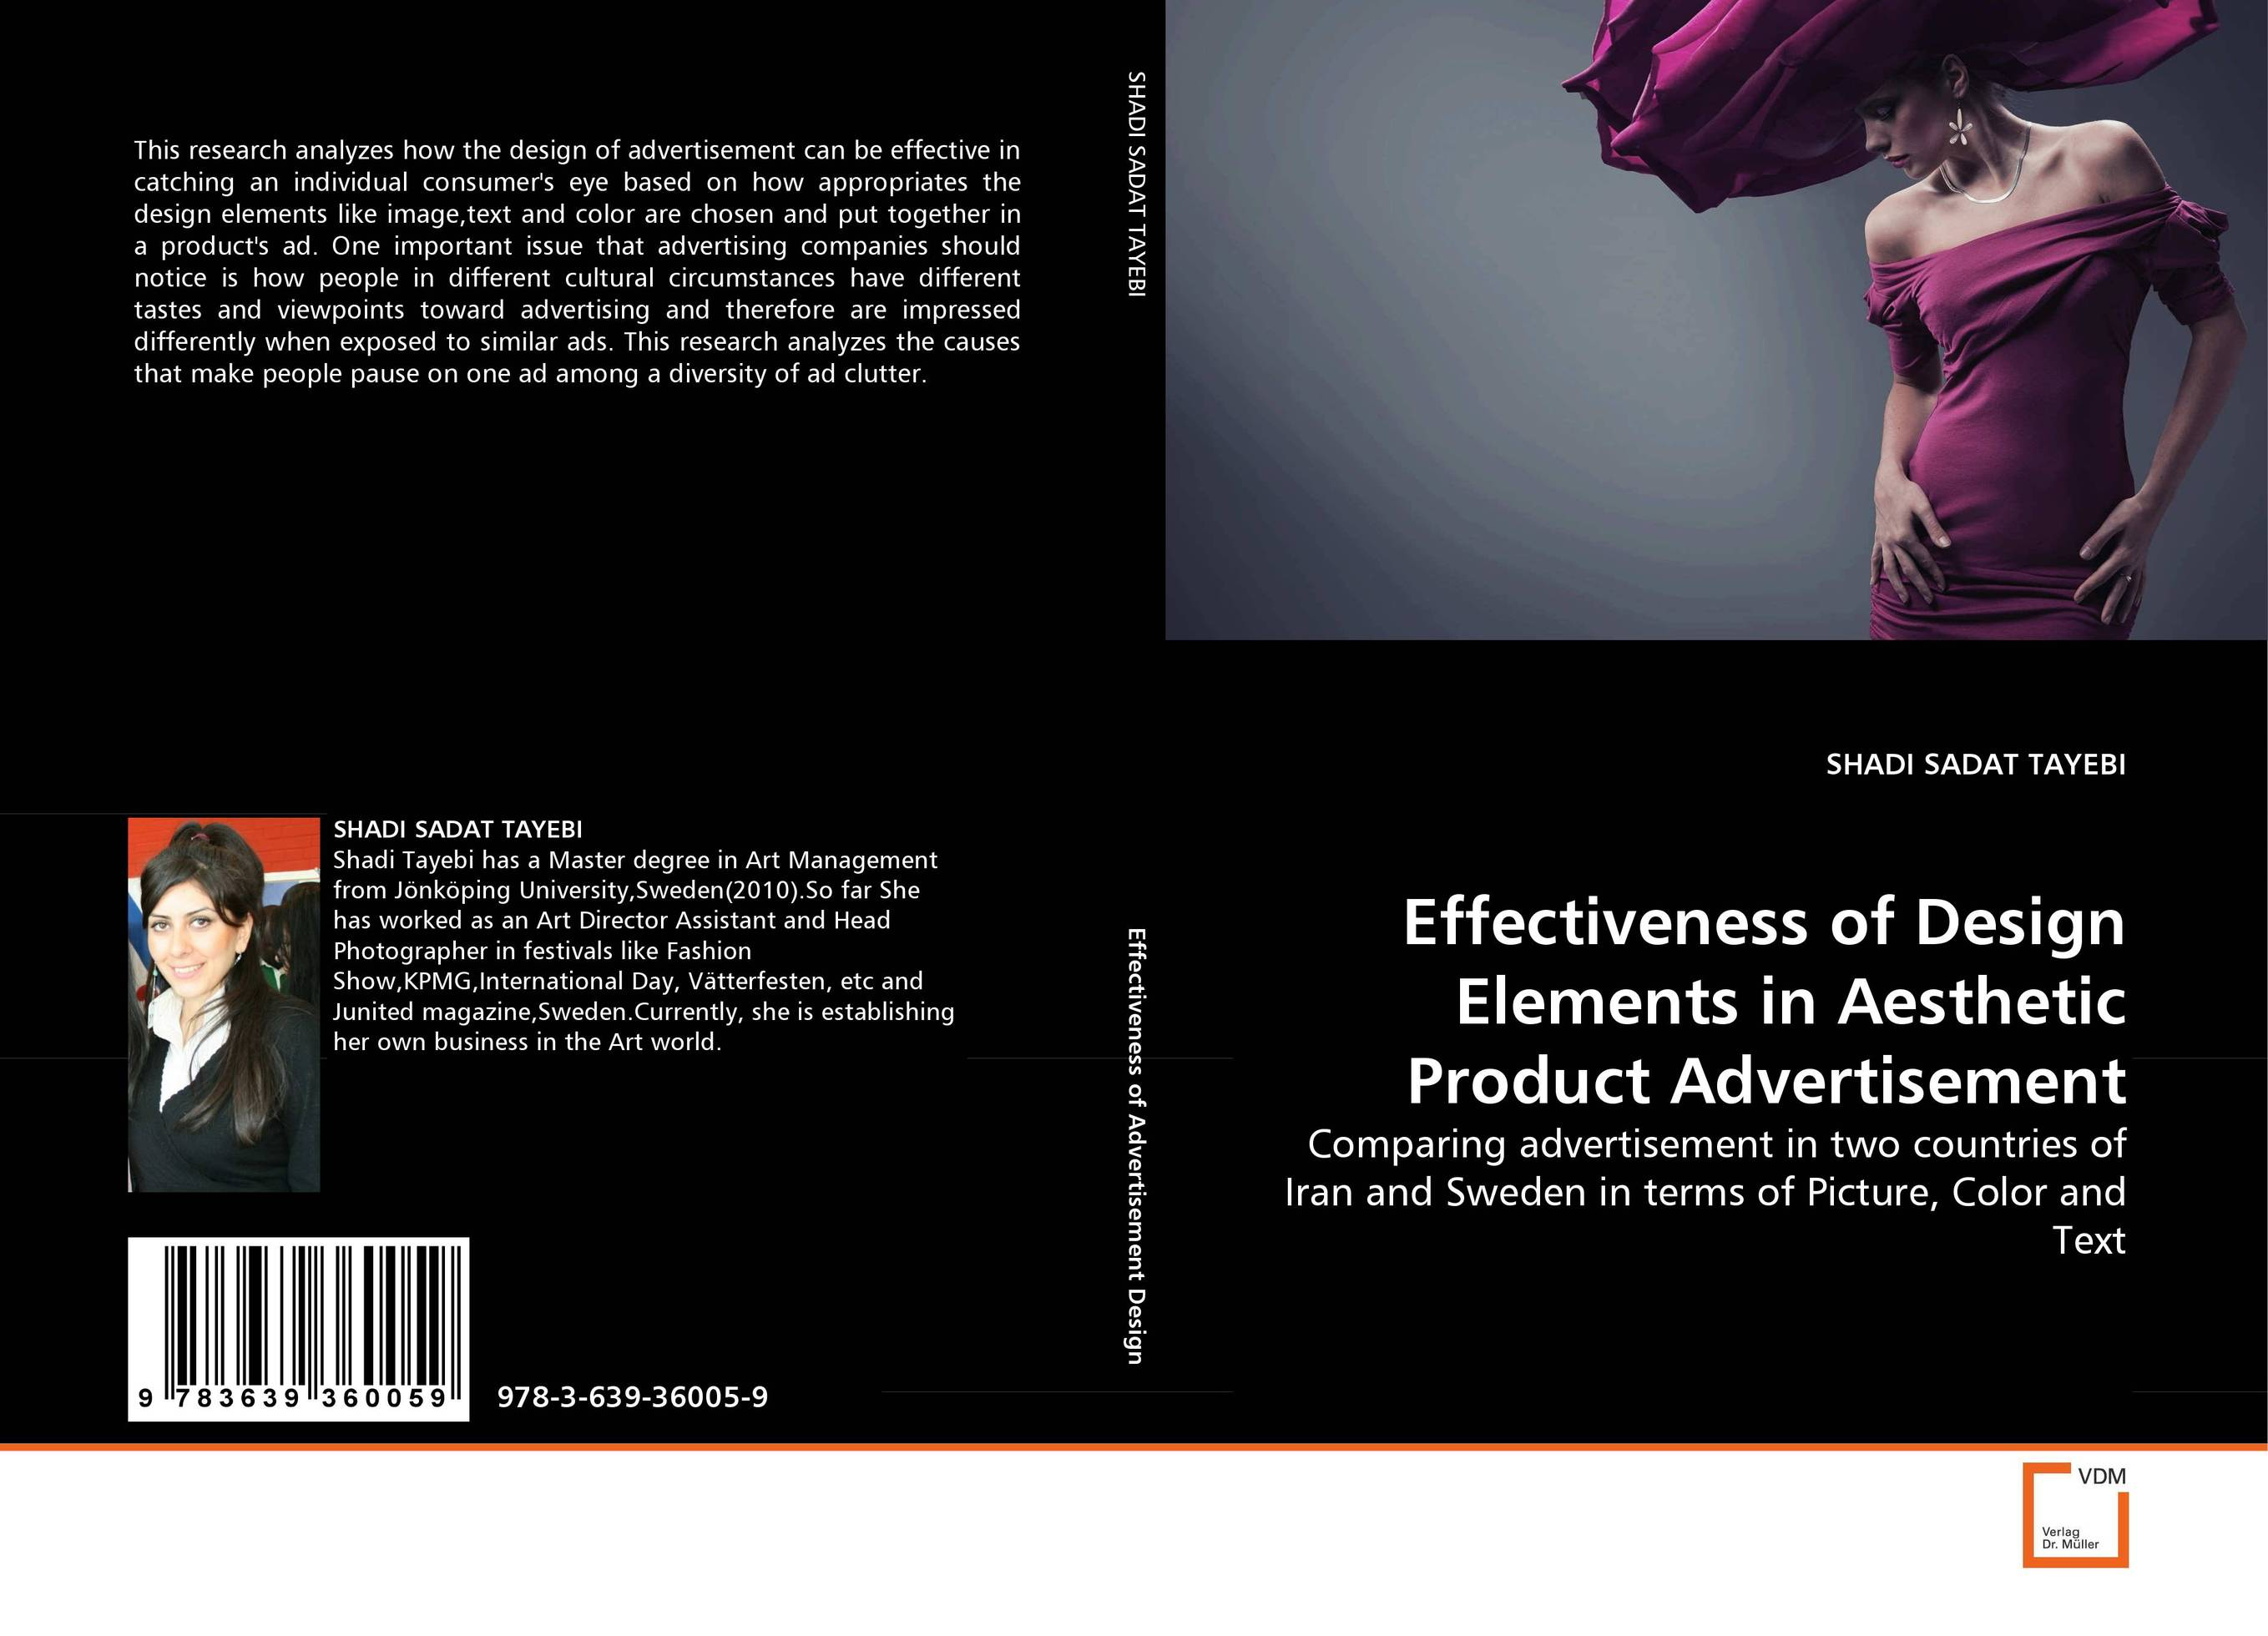 Effectiveness of Design Elements in Aesthetic Product Advertisement